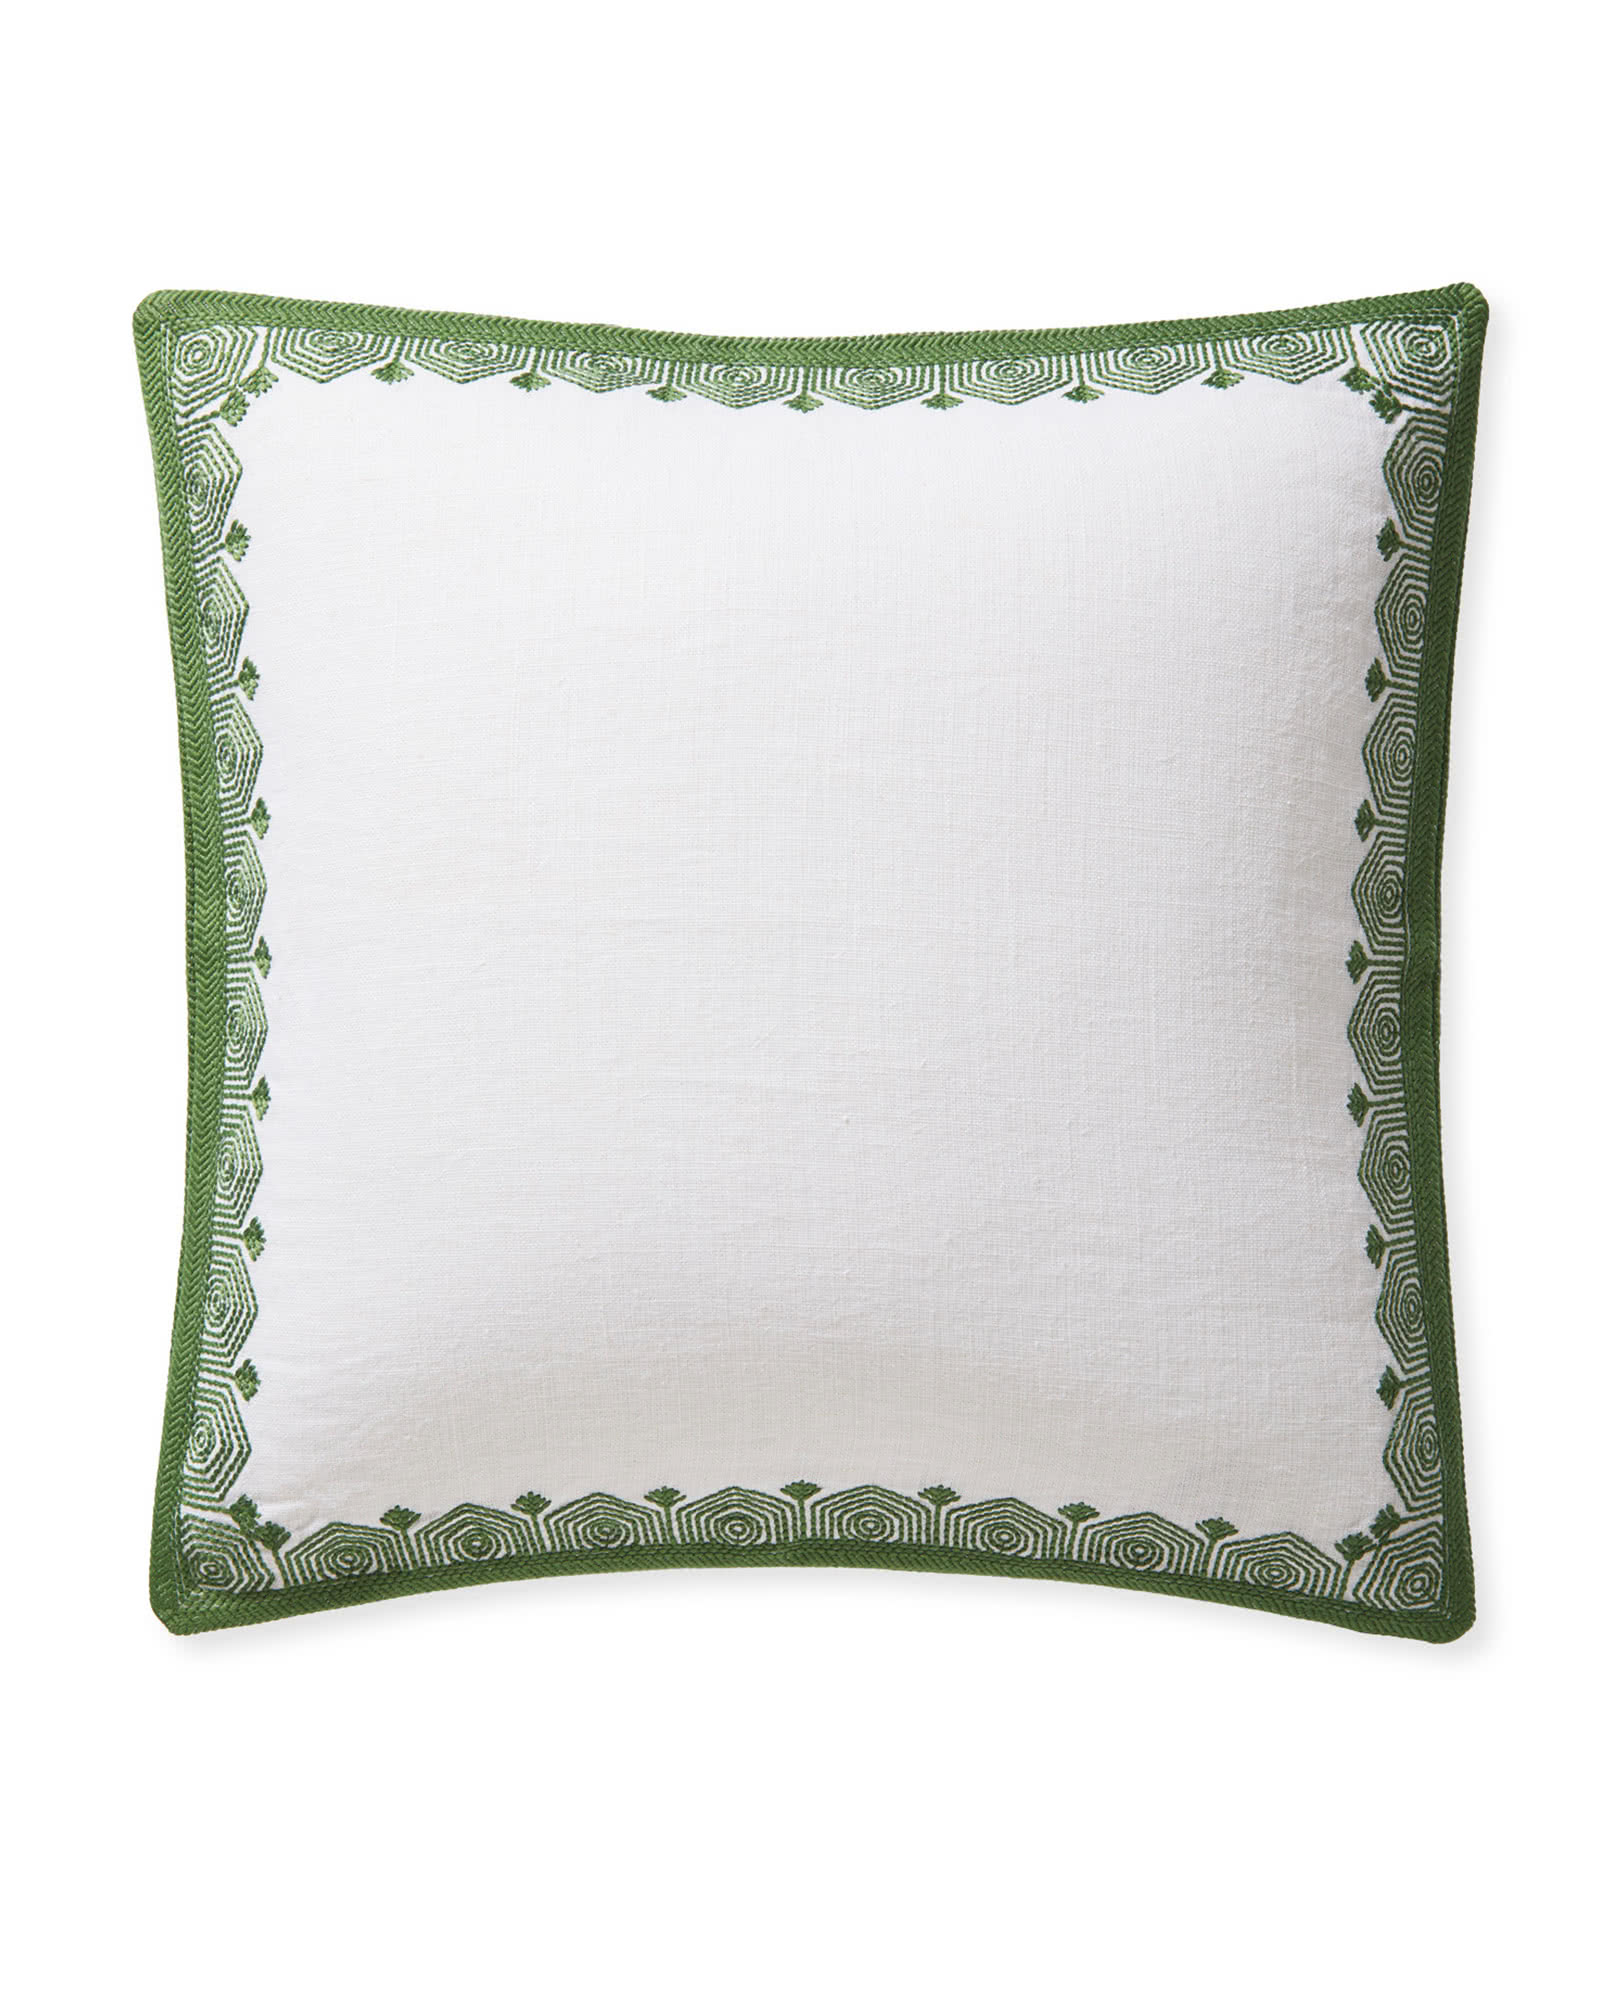 Olympia Pillow Cover, Moss